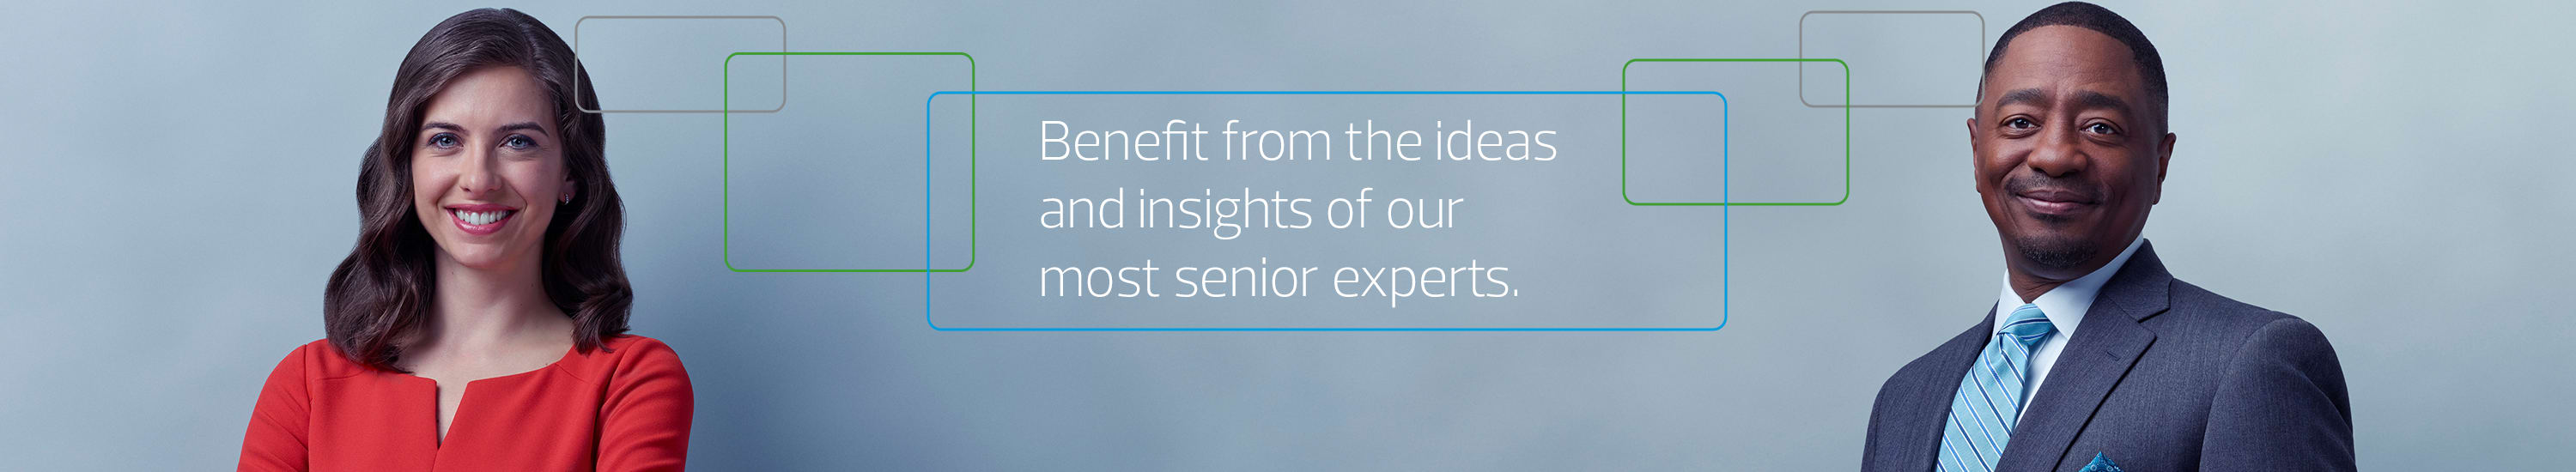 Benefit from the ideas and insights of our most senior experts.